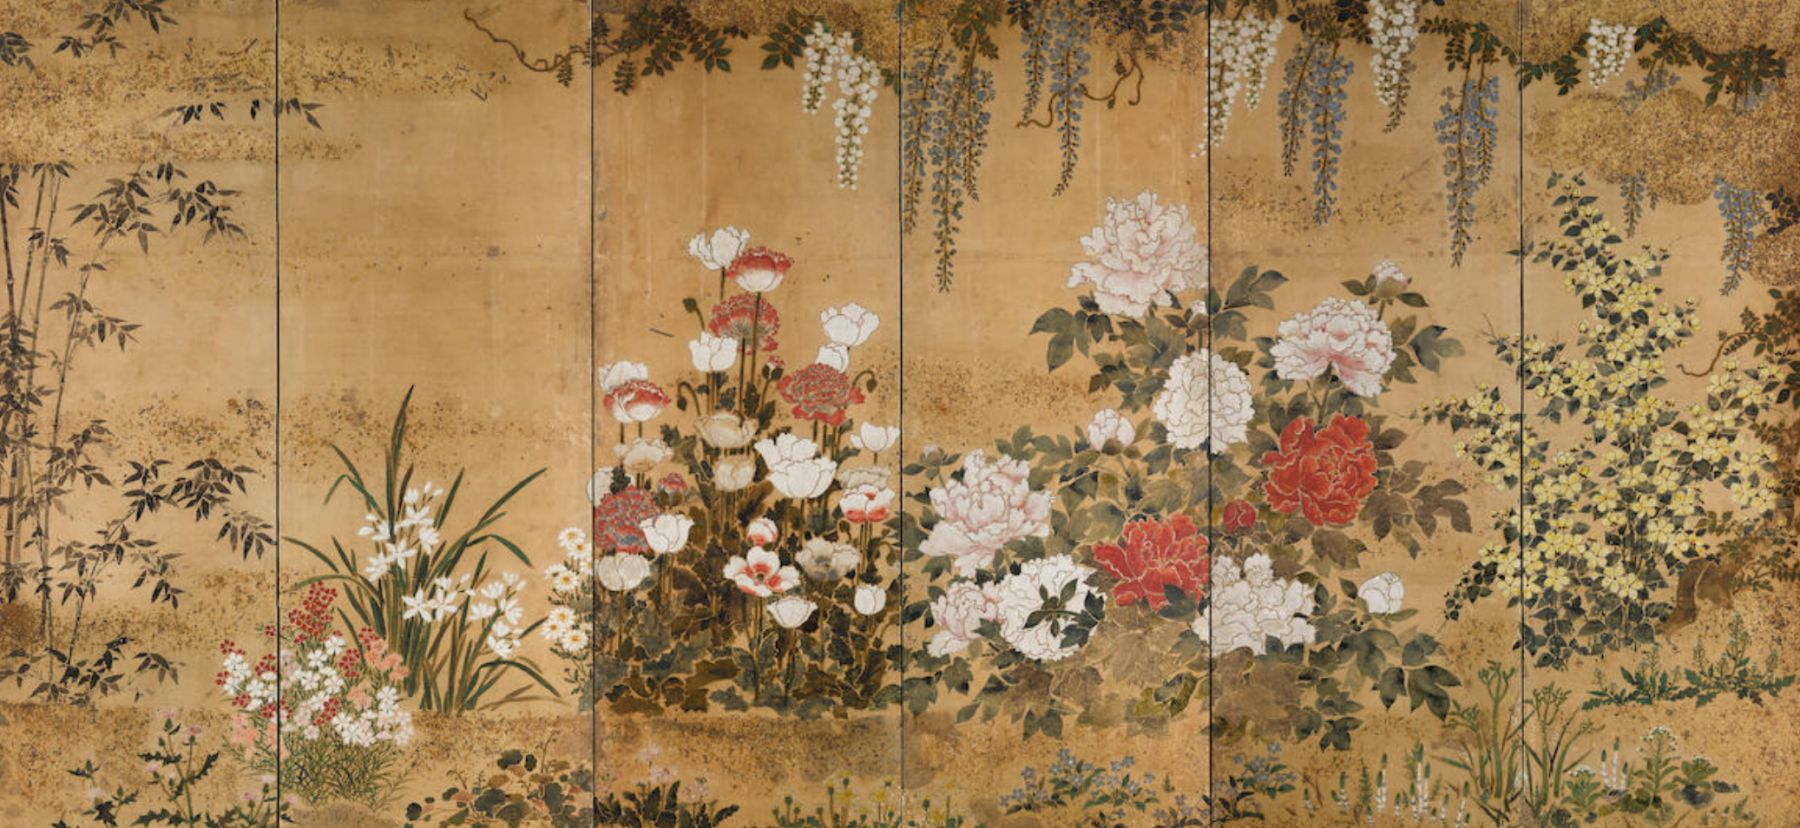 Fine Japanese and Korean Art